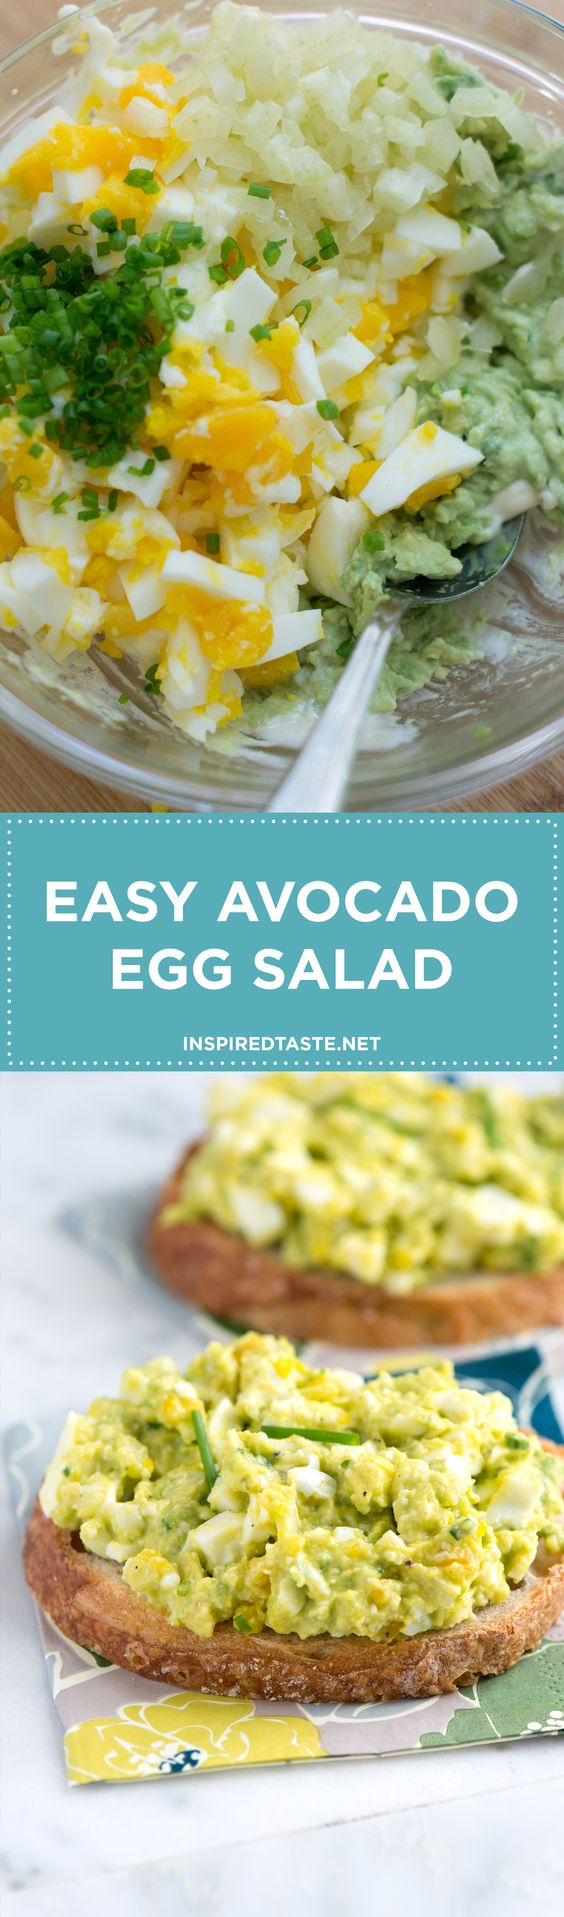 Our avocado egg salad recipe is very simple, all you need to do is mash avocado with a tiny bit of mayonnaise then stir in chopped eggs, celery, lemon juice and herbs. You could even swap nonfat or low-fat yogurt for the mayonnaise (sour cream works, too). Recipe on inspiredtaste.net | @inspiredtaste: